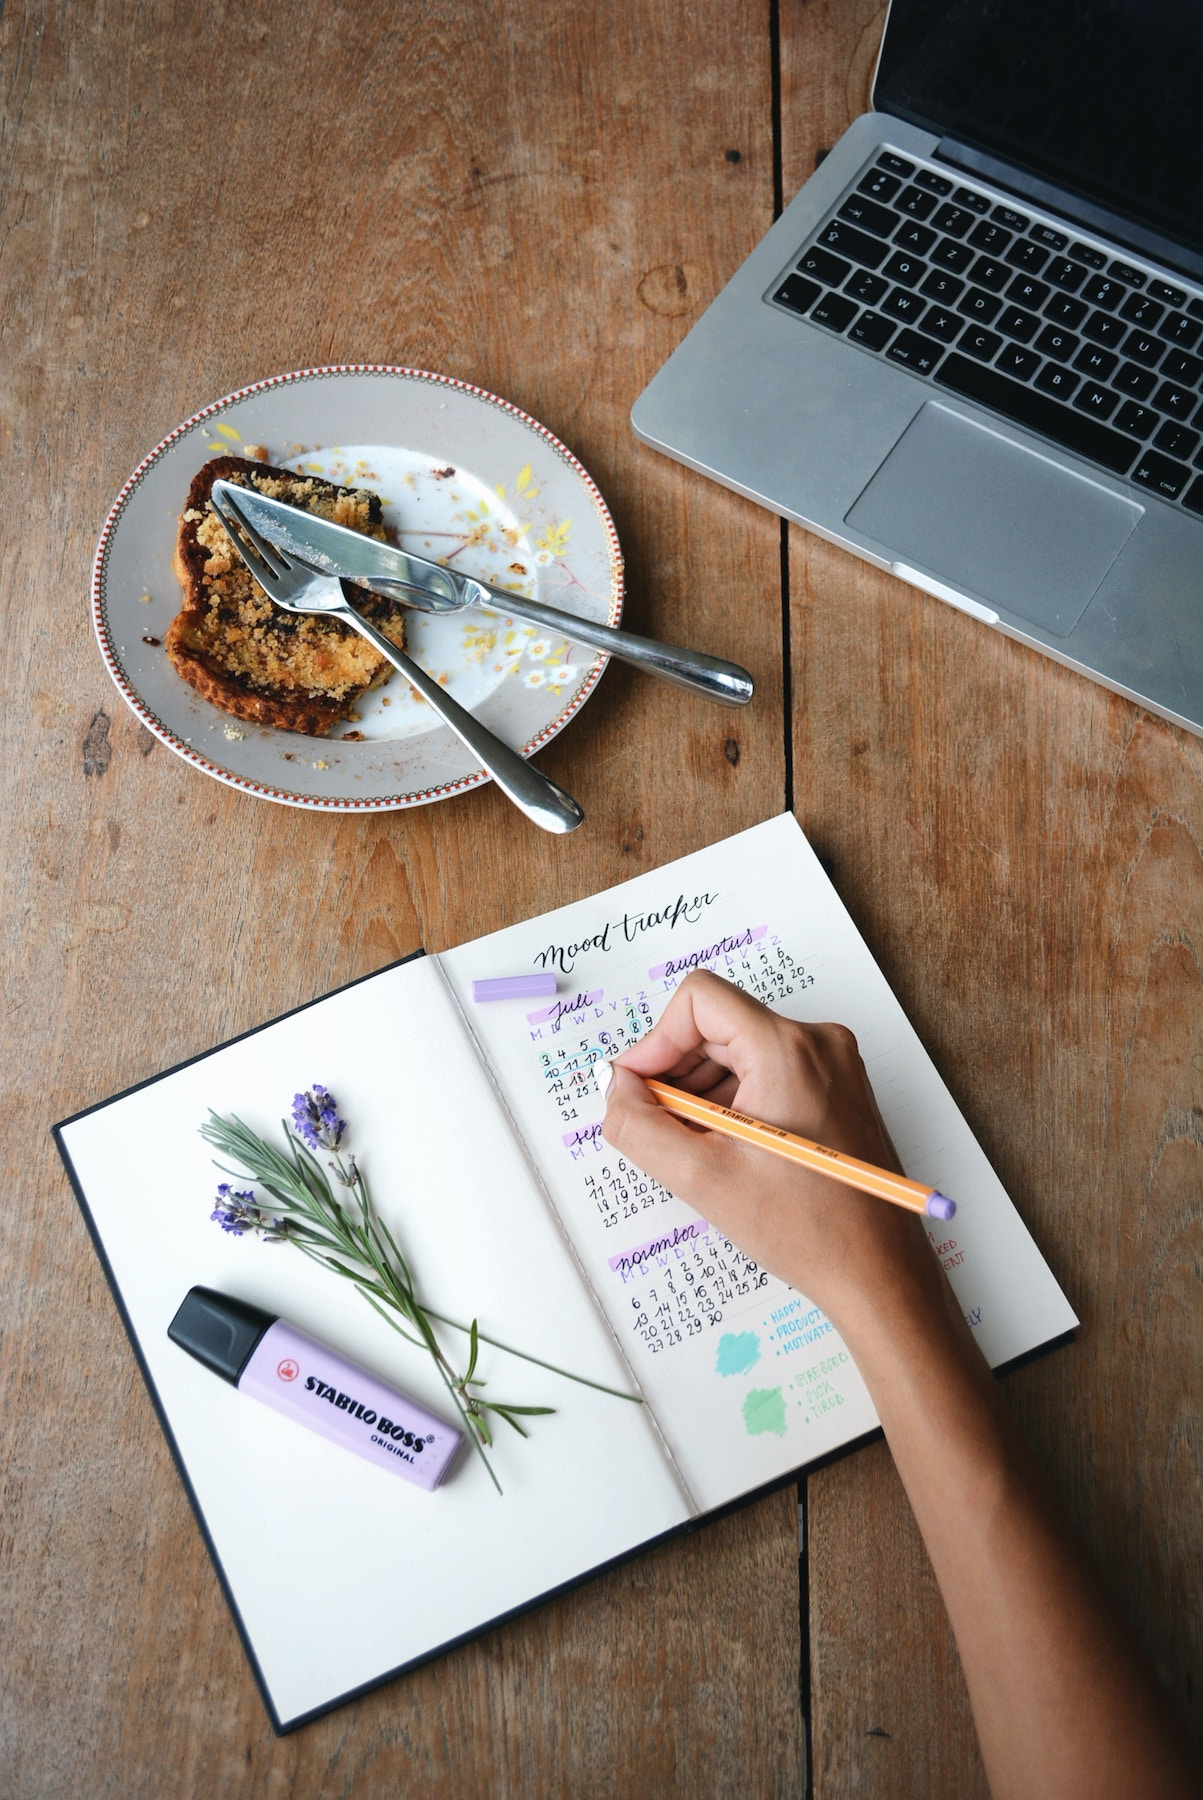 I Tried a Bullet Journal for One Week—Here's What Happened